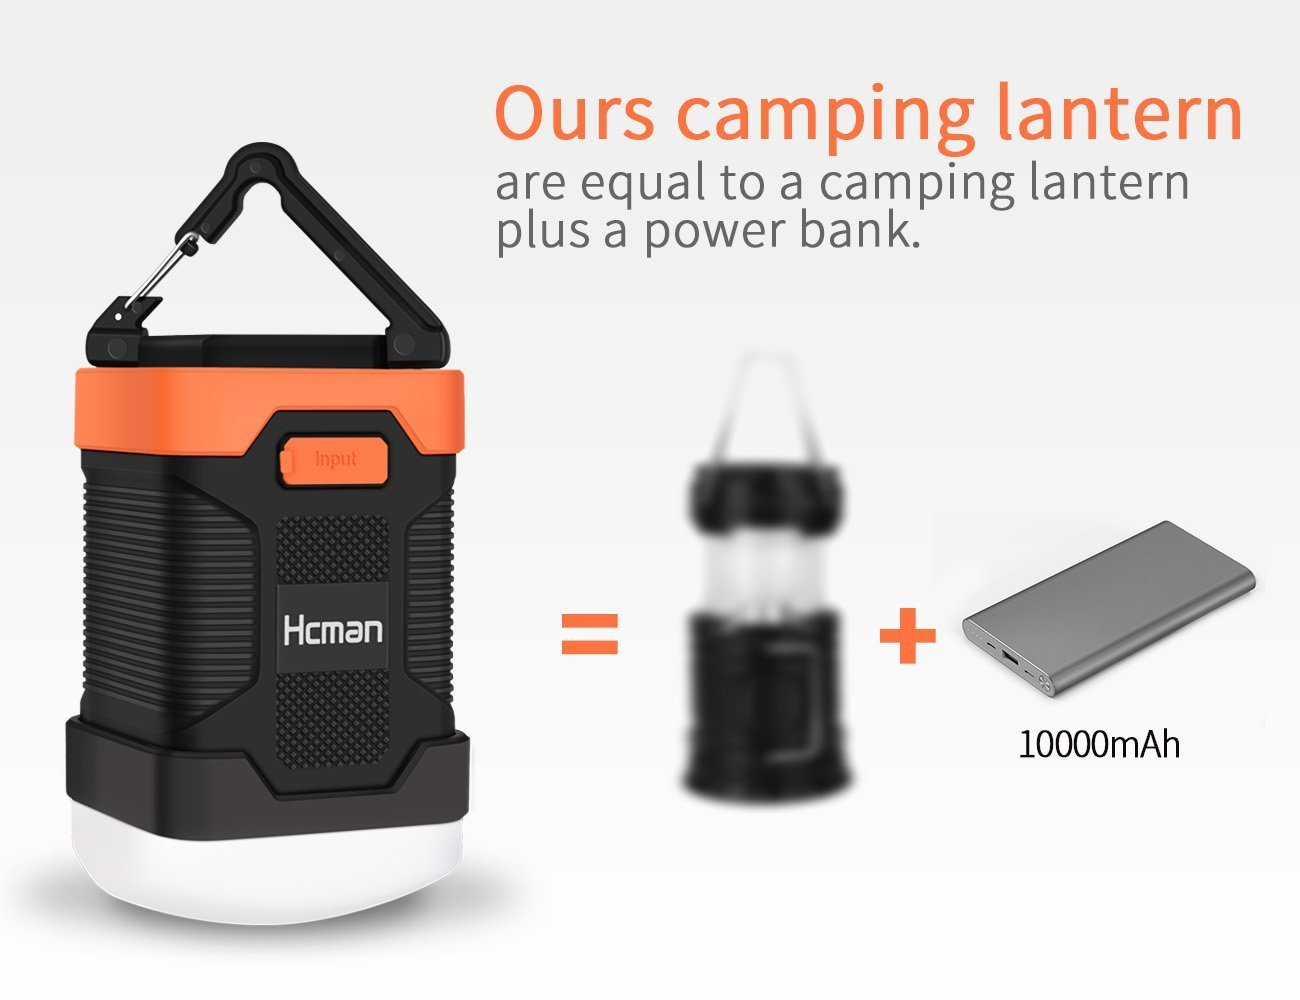 LED Camping Lantern Rechargeable Flashlight - Hcman Power Bank 10000 mAh, Tent Flashlight Led Camping Lamp IP65 Waterproof Camping Gear Equipment for Camping, Hiking, Fishing and Emergencies